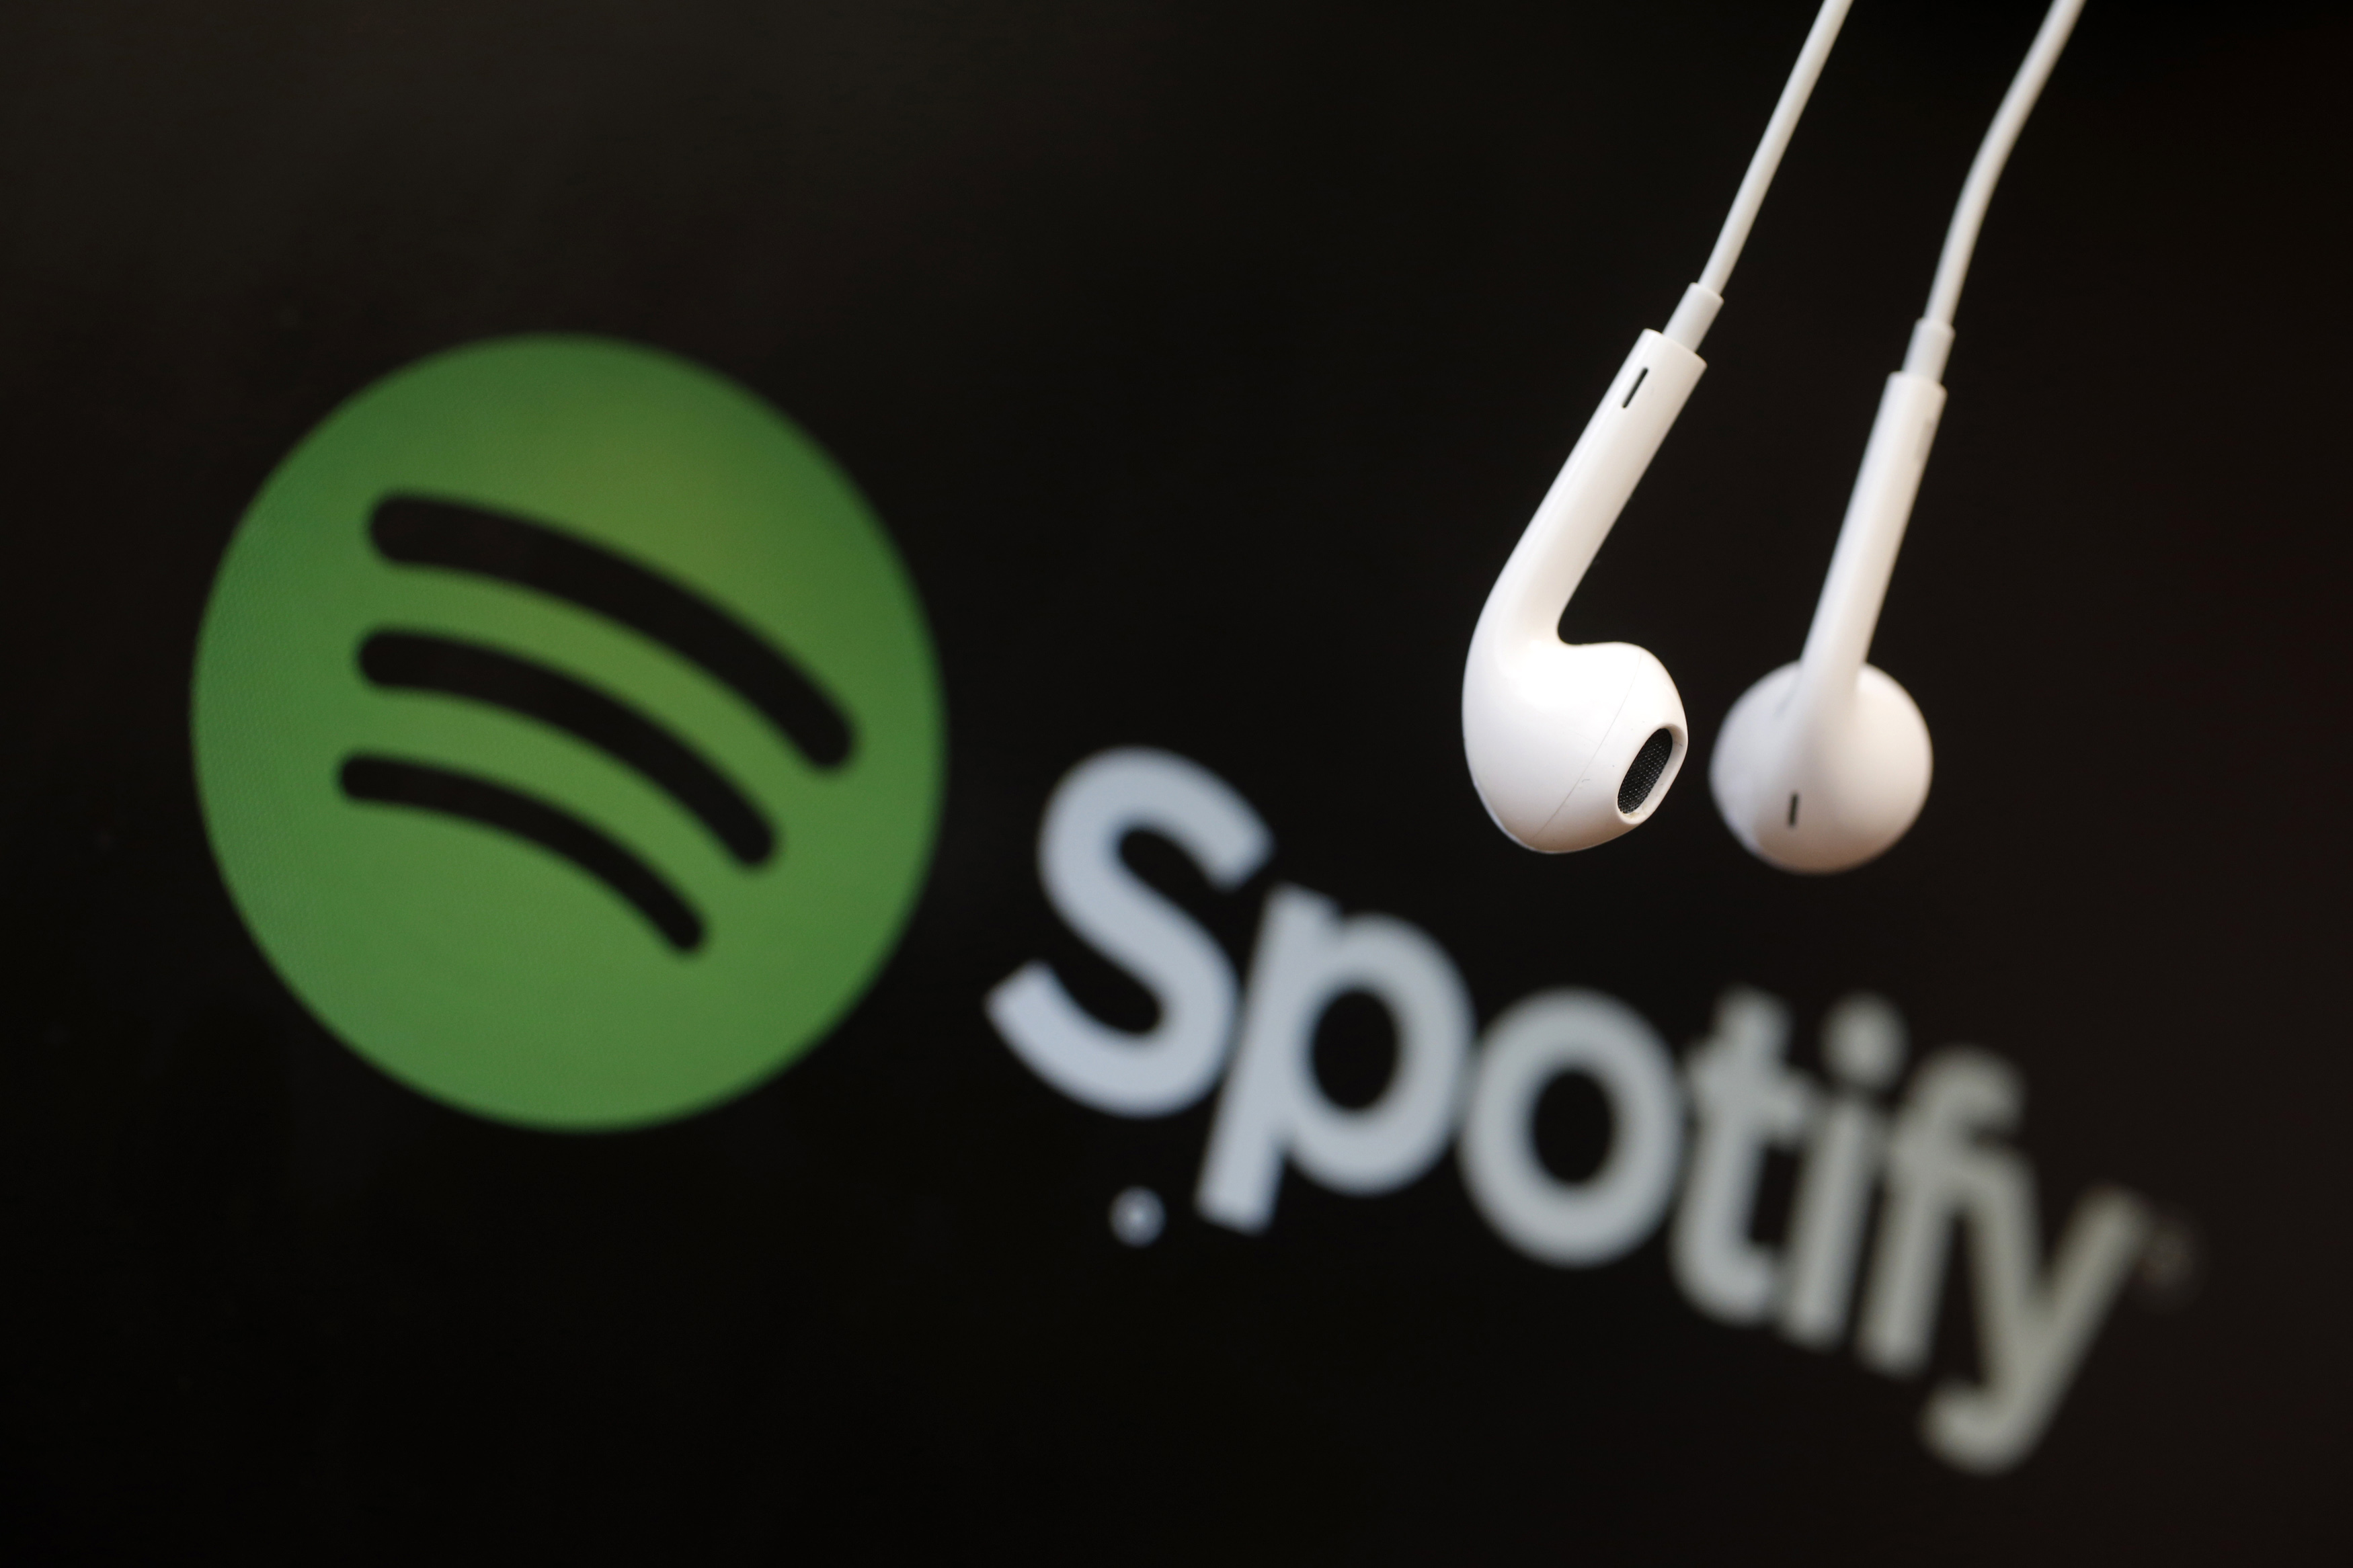 Headphones are seen in front of a logo of online music streaming service Spotify in this illustration picture taken in Strasbourg, February 18, 2014. Spotify is recruiting a U.S. financial reporting specialist, adding to speculation that the Swedish start-up is preparing for a share listing, which one banker said could value the firm at as much as $8 billion. REUTERS/Christian Hartmann (FRANCE - Tags: BUSINESS ENTERTAINMENT LOGO) - RTX1914U